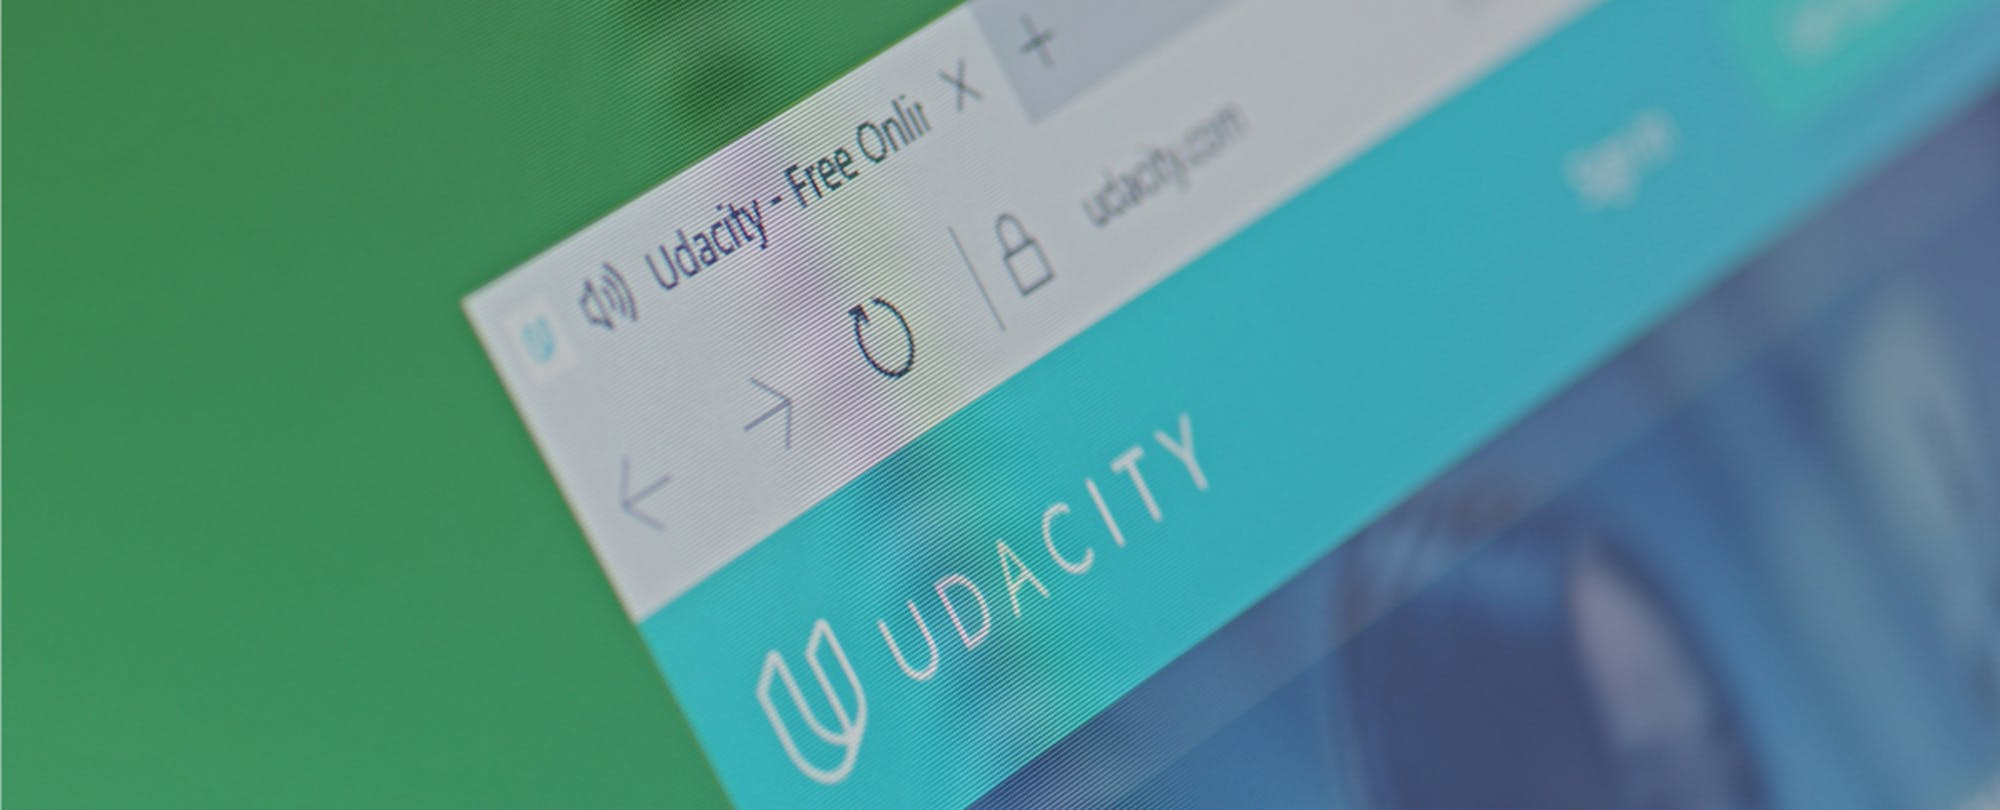 Udacity Official Declares MOOCs 'Dead' (Though the Company Still Offers Them)